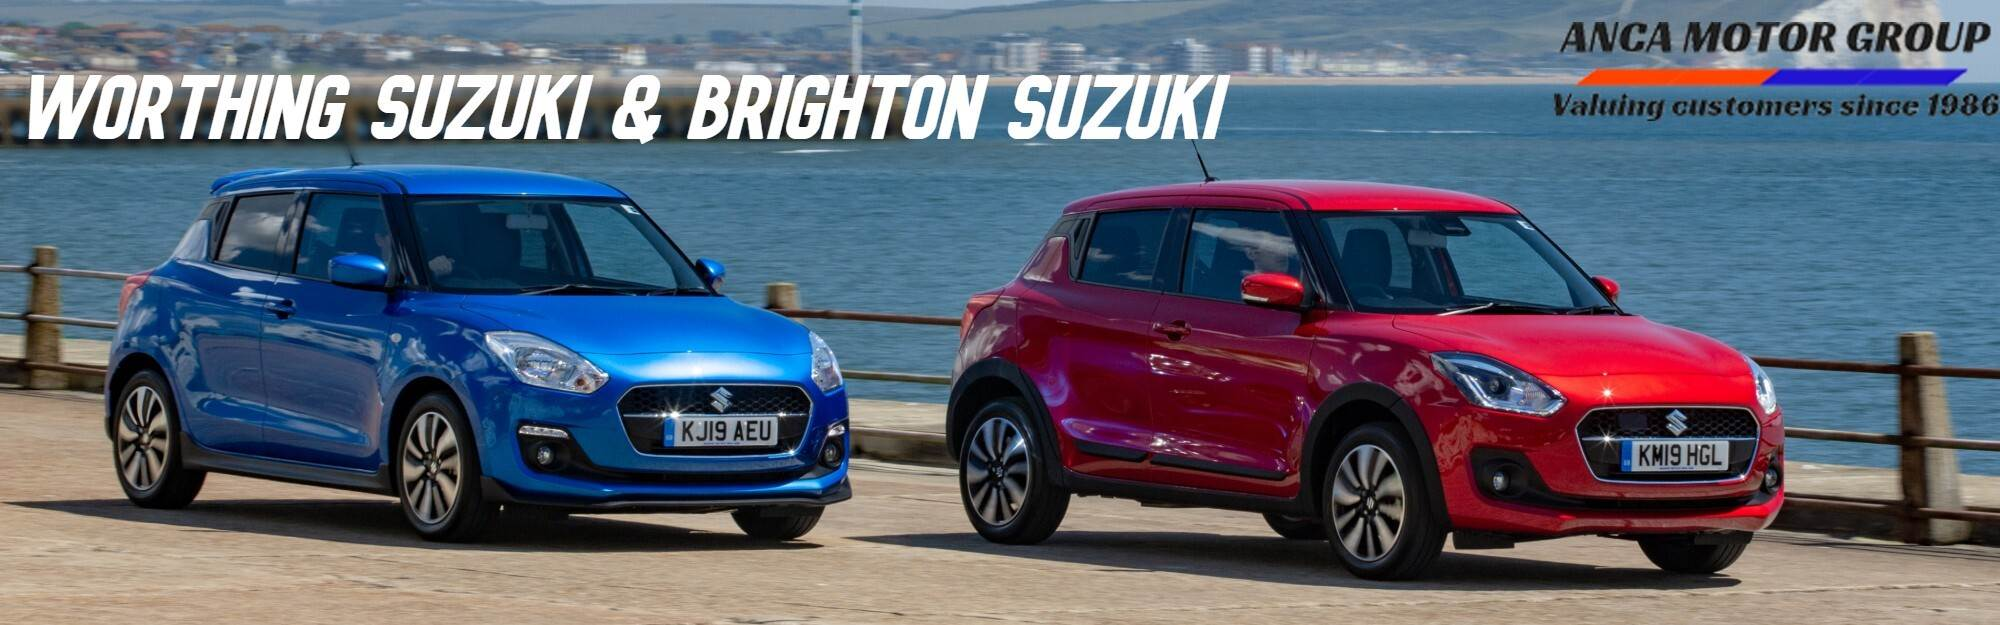 Anca Motor Group Brighton Worthing Suzuki